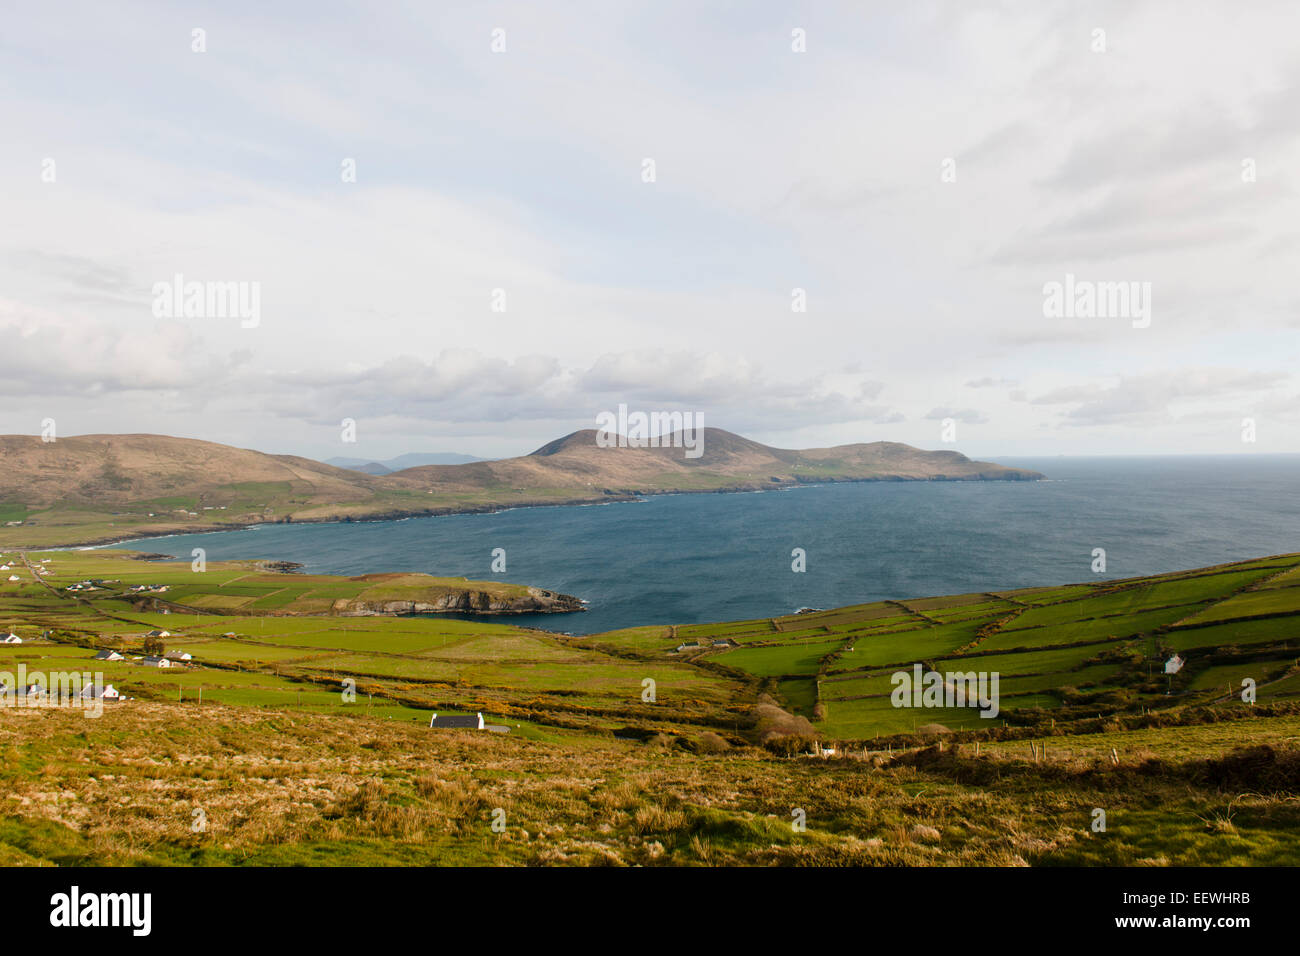 Bay with hedgerows, County Kerry, Ireland - Stock Image